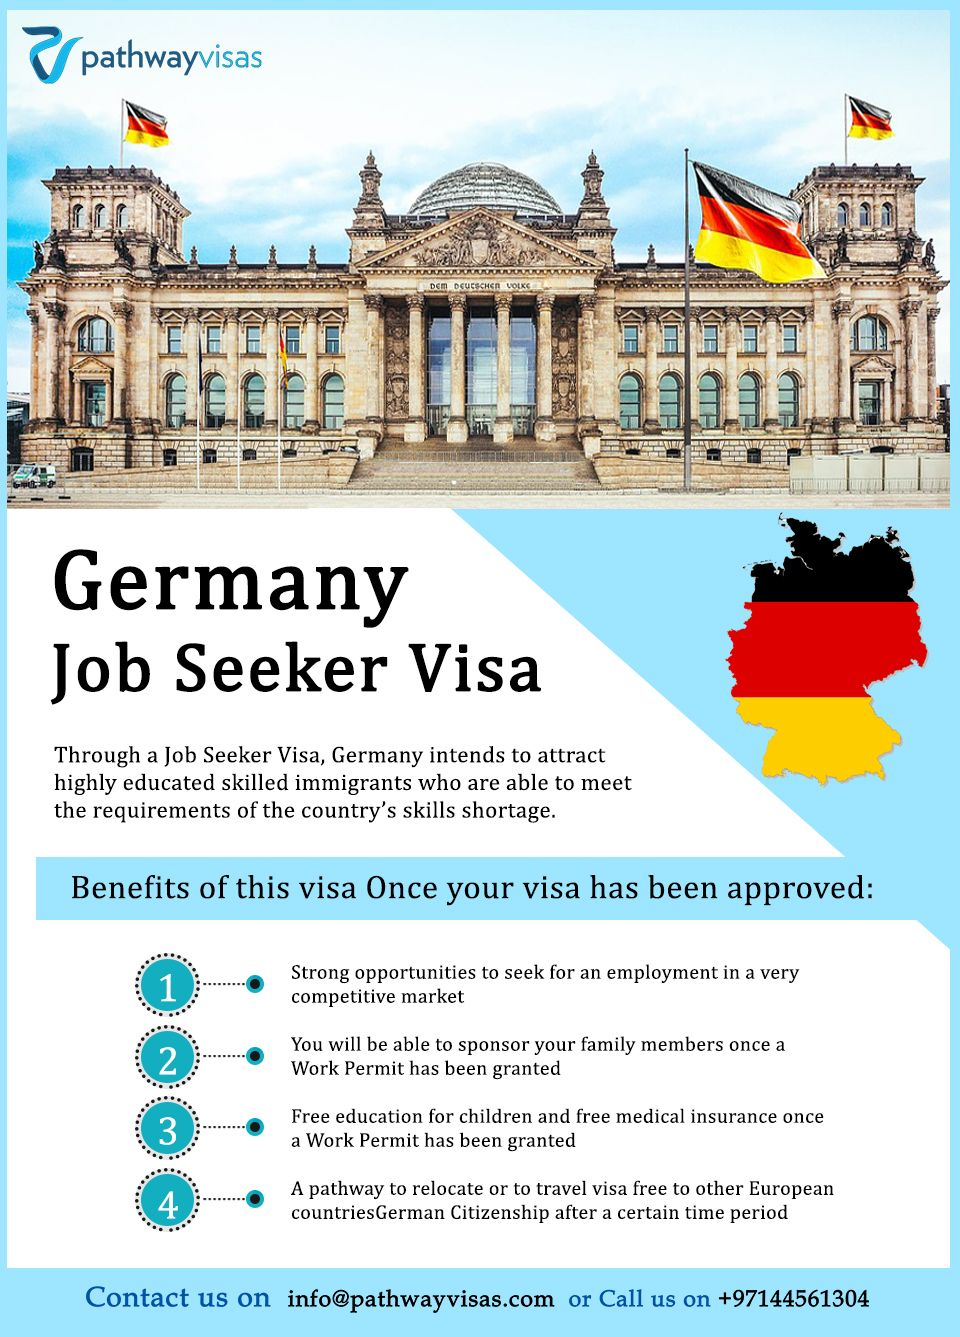 51d2da4db79c57b5e9acc6dd8e1bcc4b - How To Get A Job In Germany After Masters